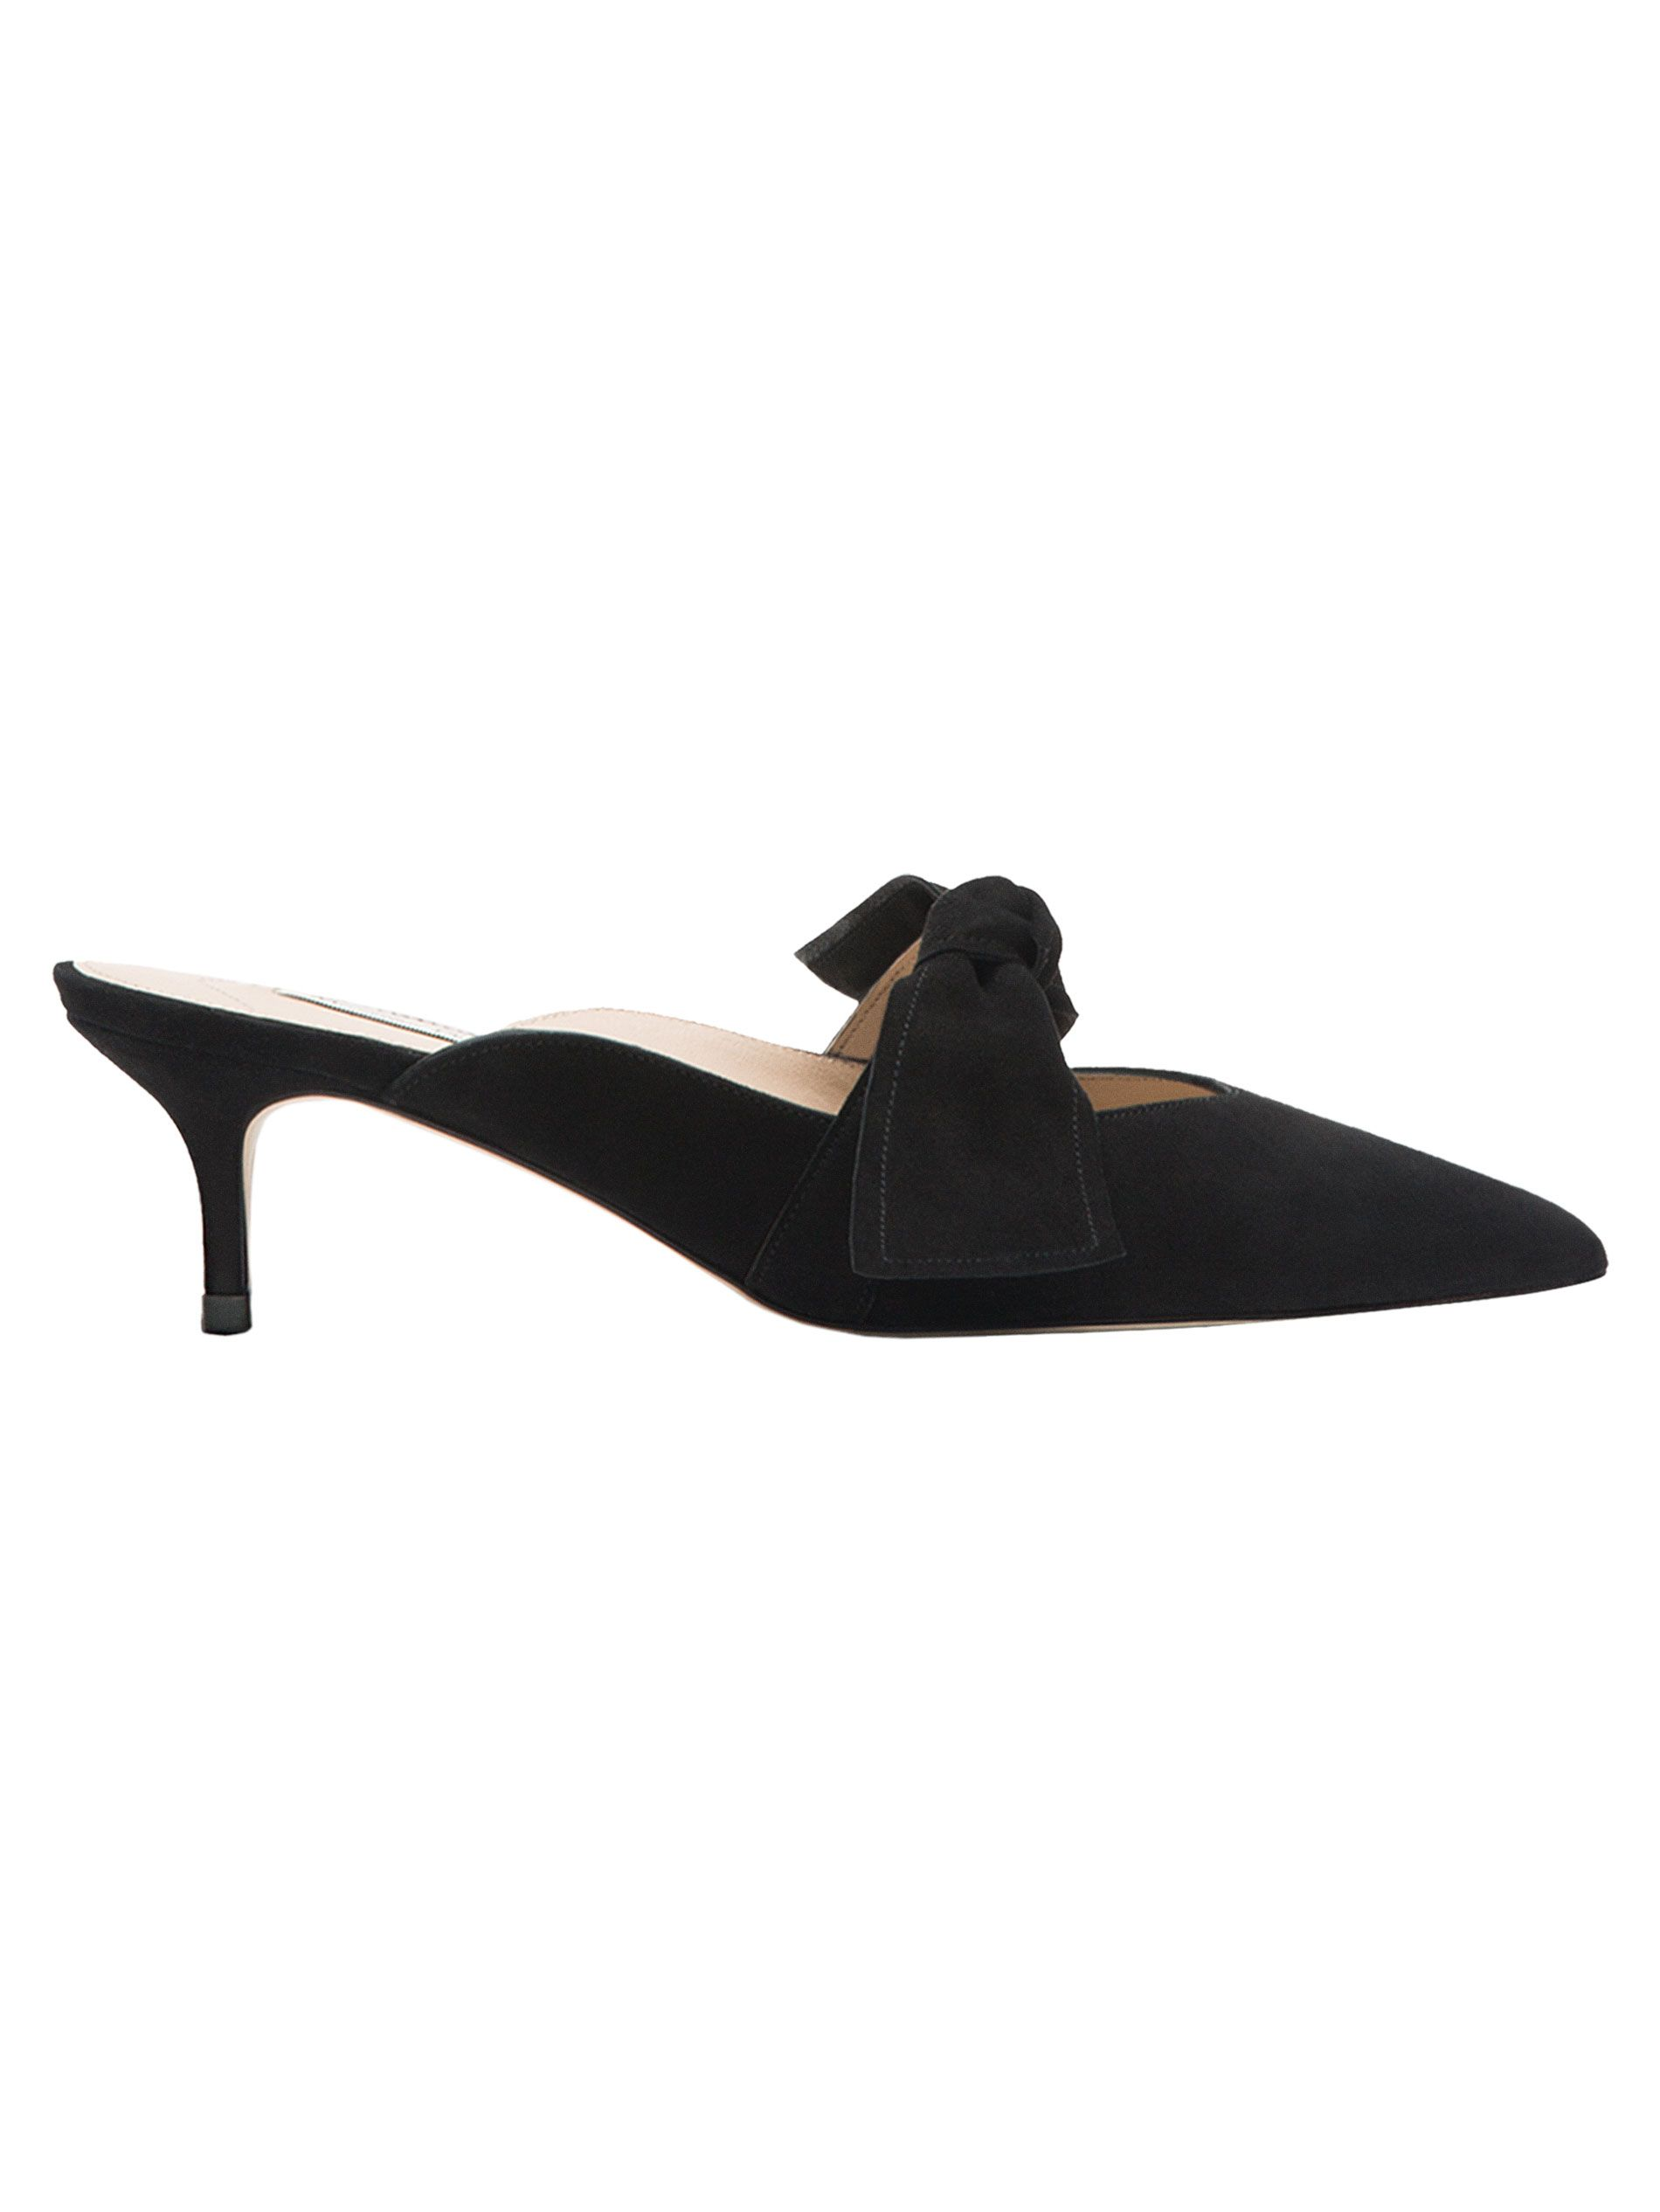 Black heel slingback shoes made from leather with a suede finish. Features a bow detail on the vamp in the same material as the upper and leather inner lining.